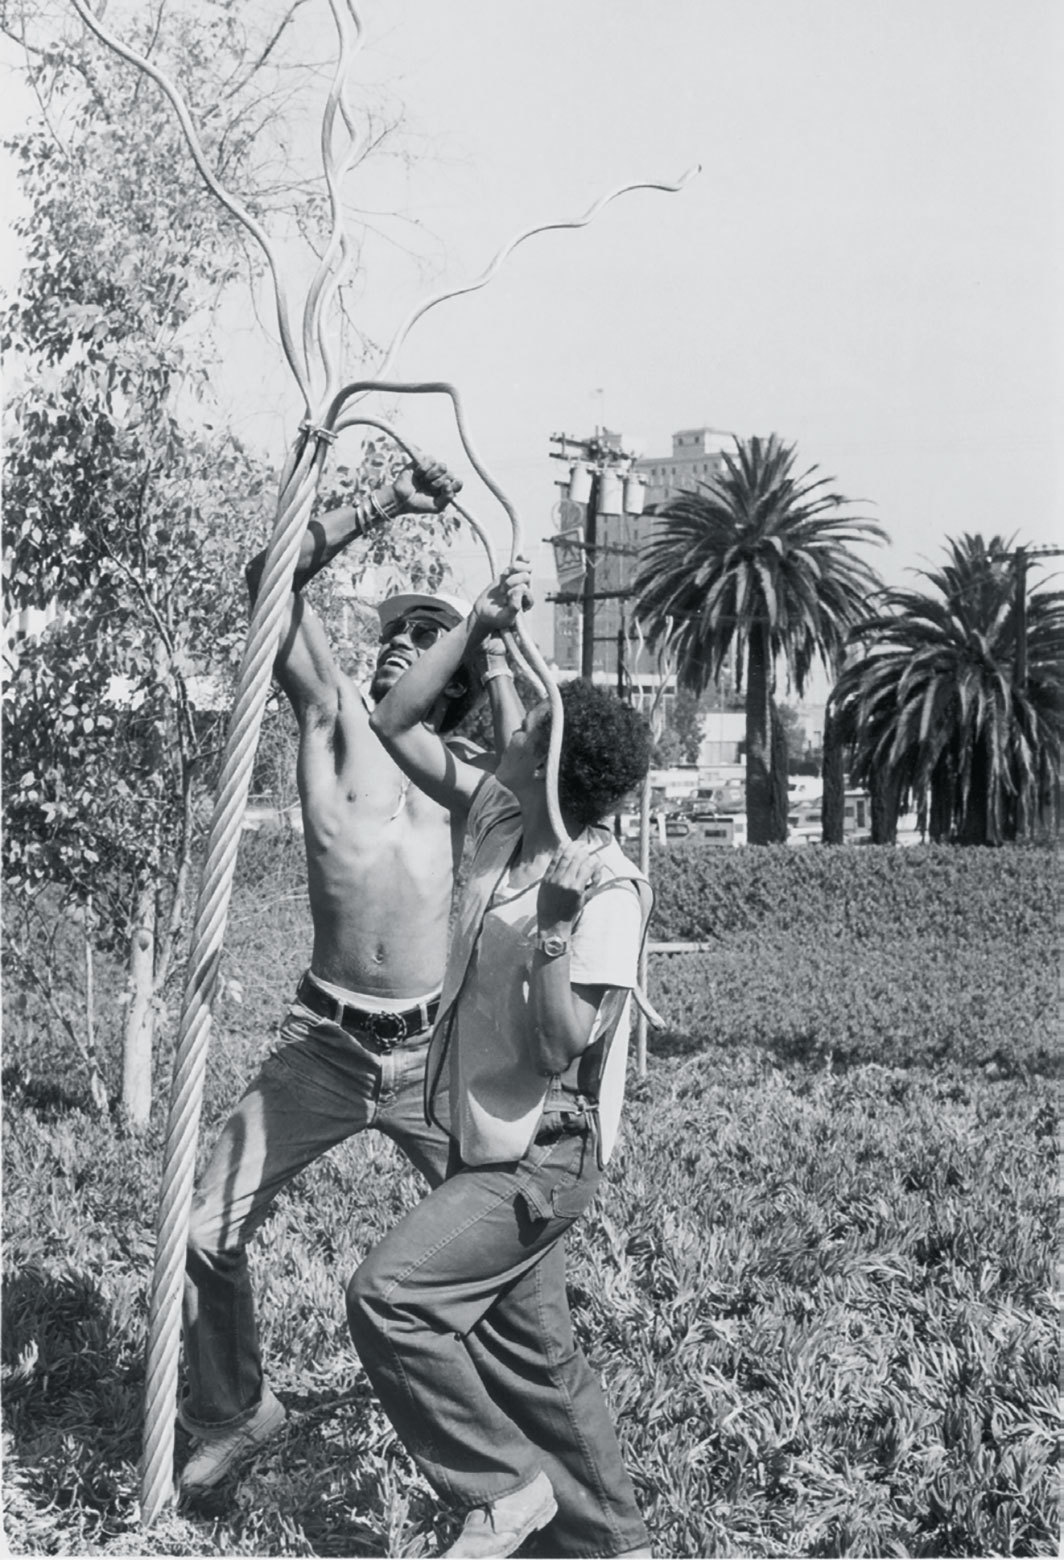 Maren Hassinger installing Twelve Trees #1, 1978, Los Angeles, 1978. Photo: Adam Avila.